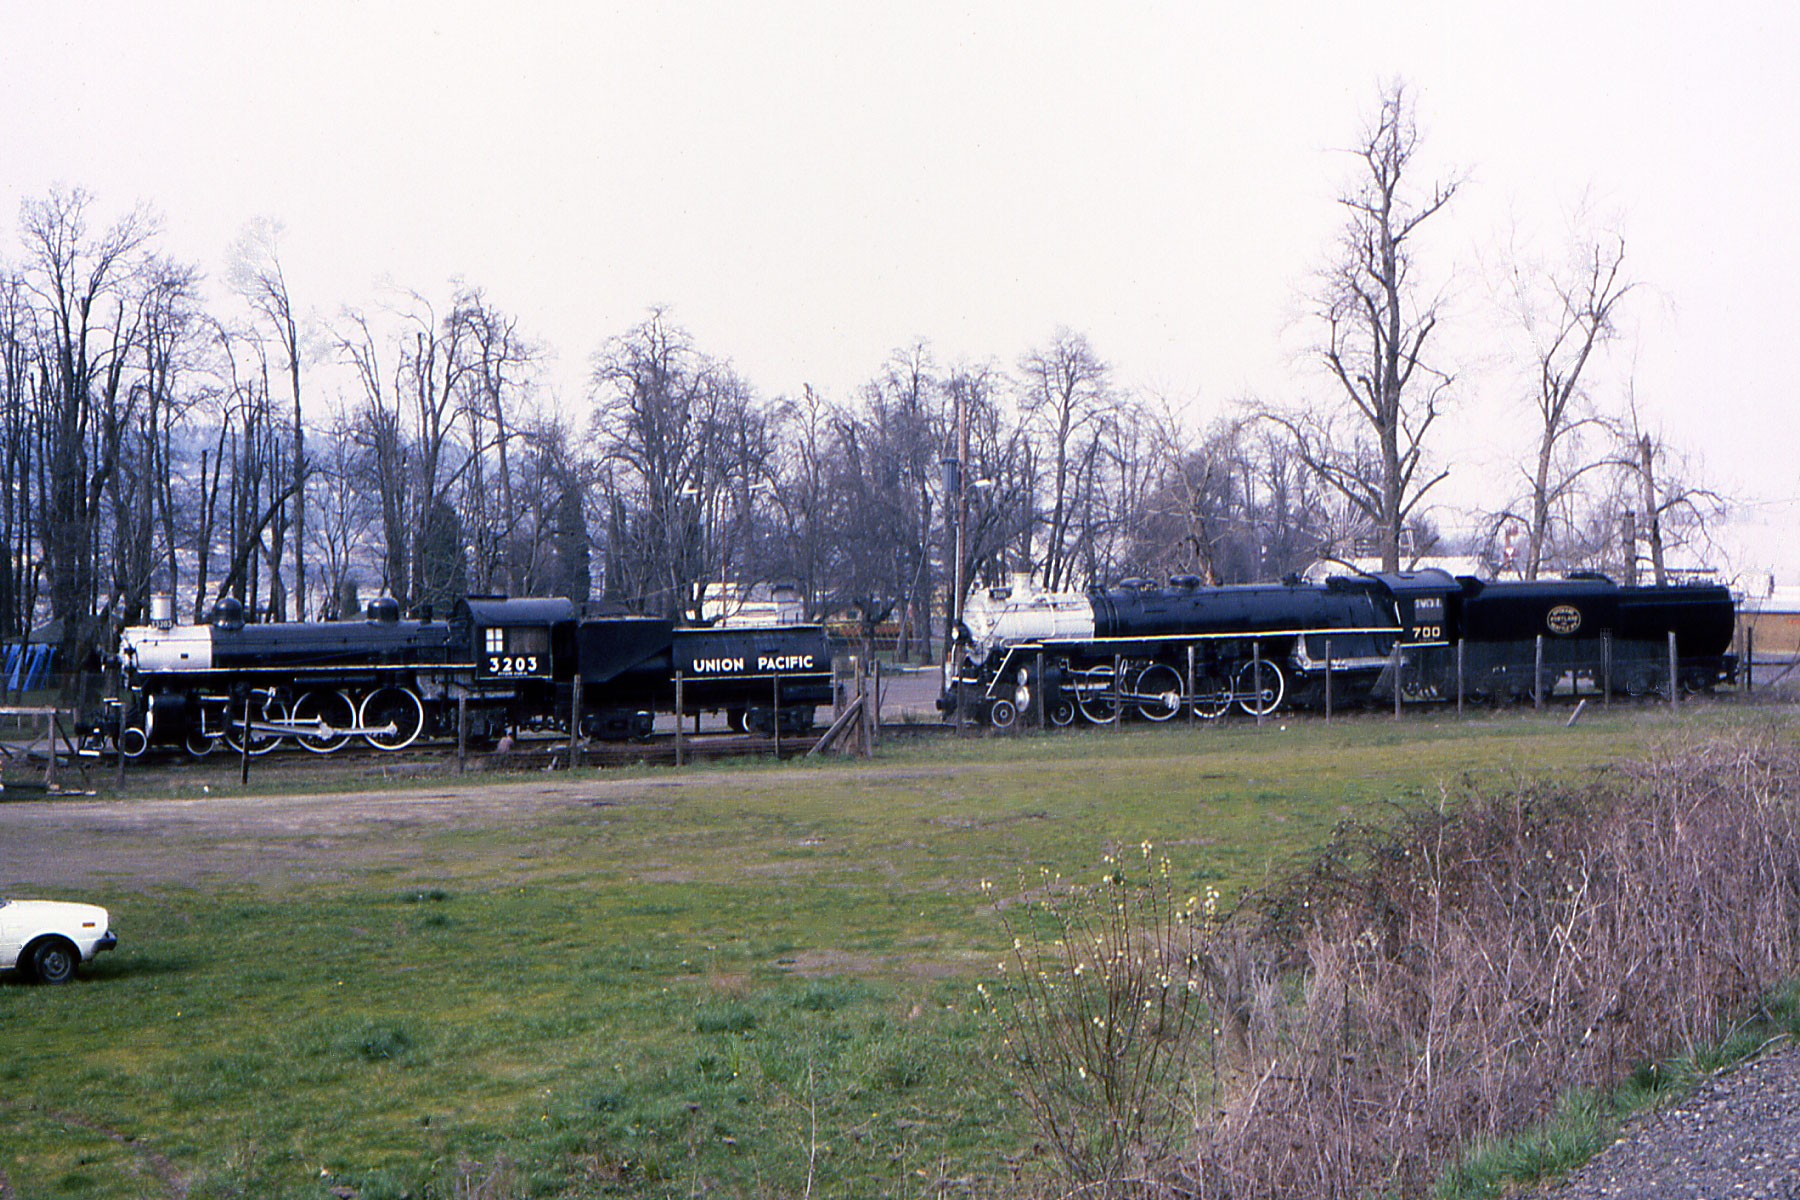 Between the PTC tracks and Oaks Park, Union Pacific 3203 and SP&S 700 were stored on display at the Oaks in August, 1981.